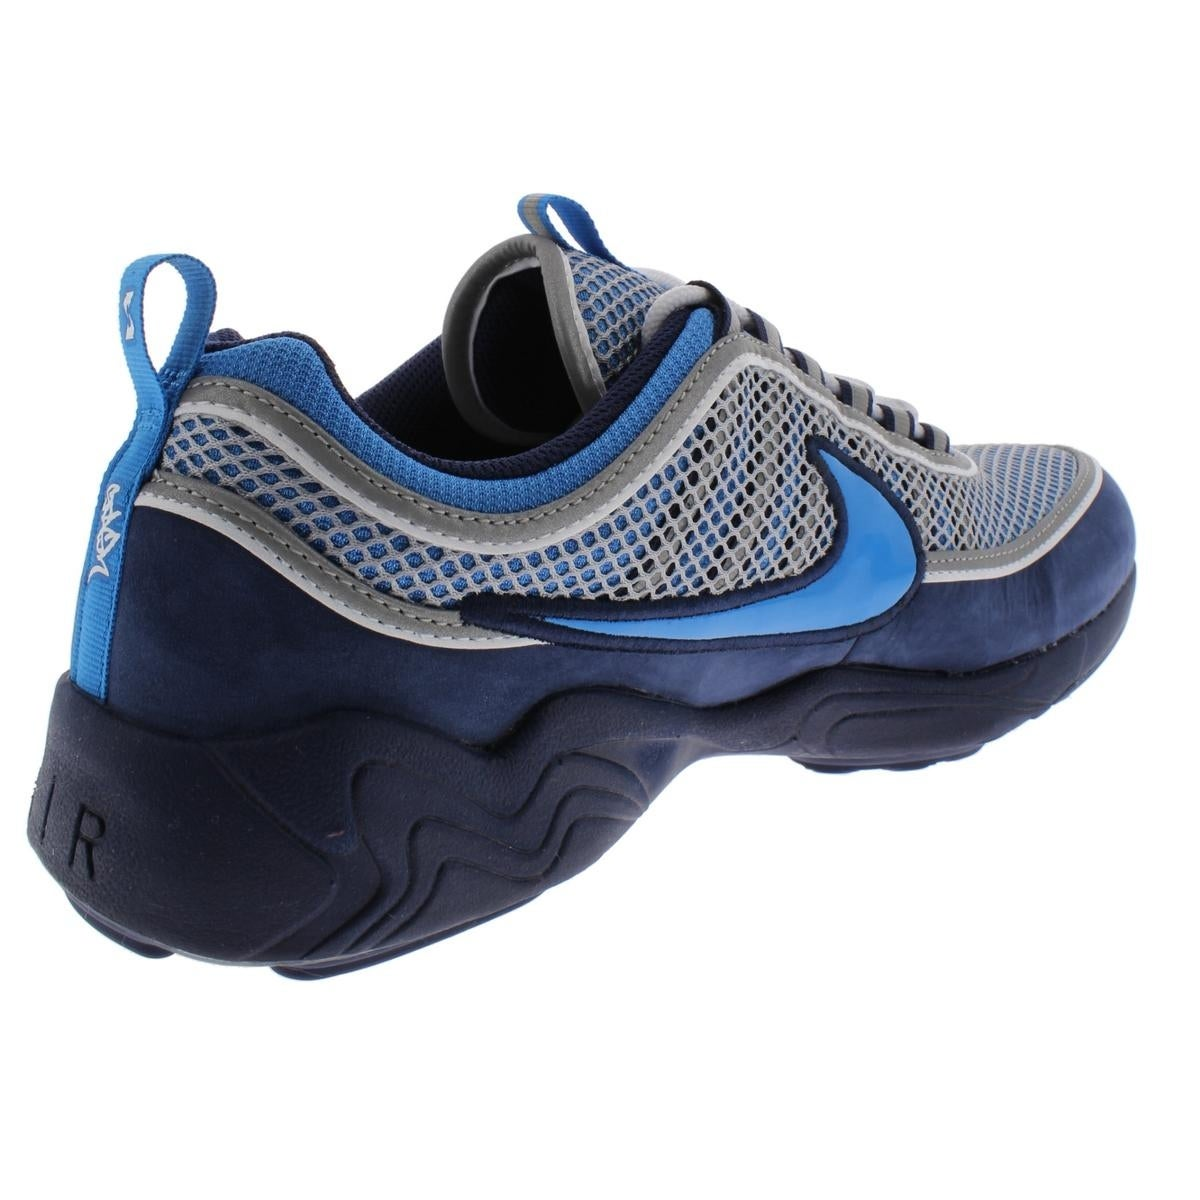 8f215197f0726 Shop Nike Mens Air Zoom Spiridon 16  STASH Athletic Shoes Running Mesh -  Free Shipping Today - Overstock - 27876171